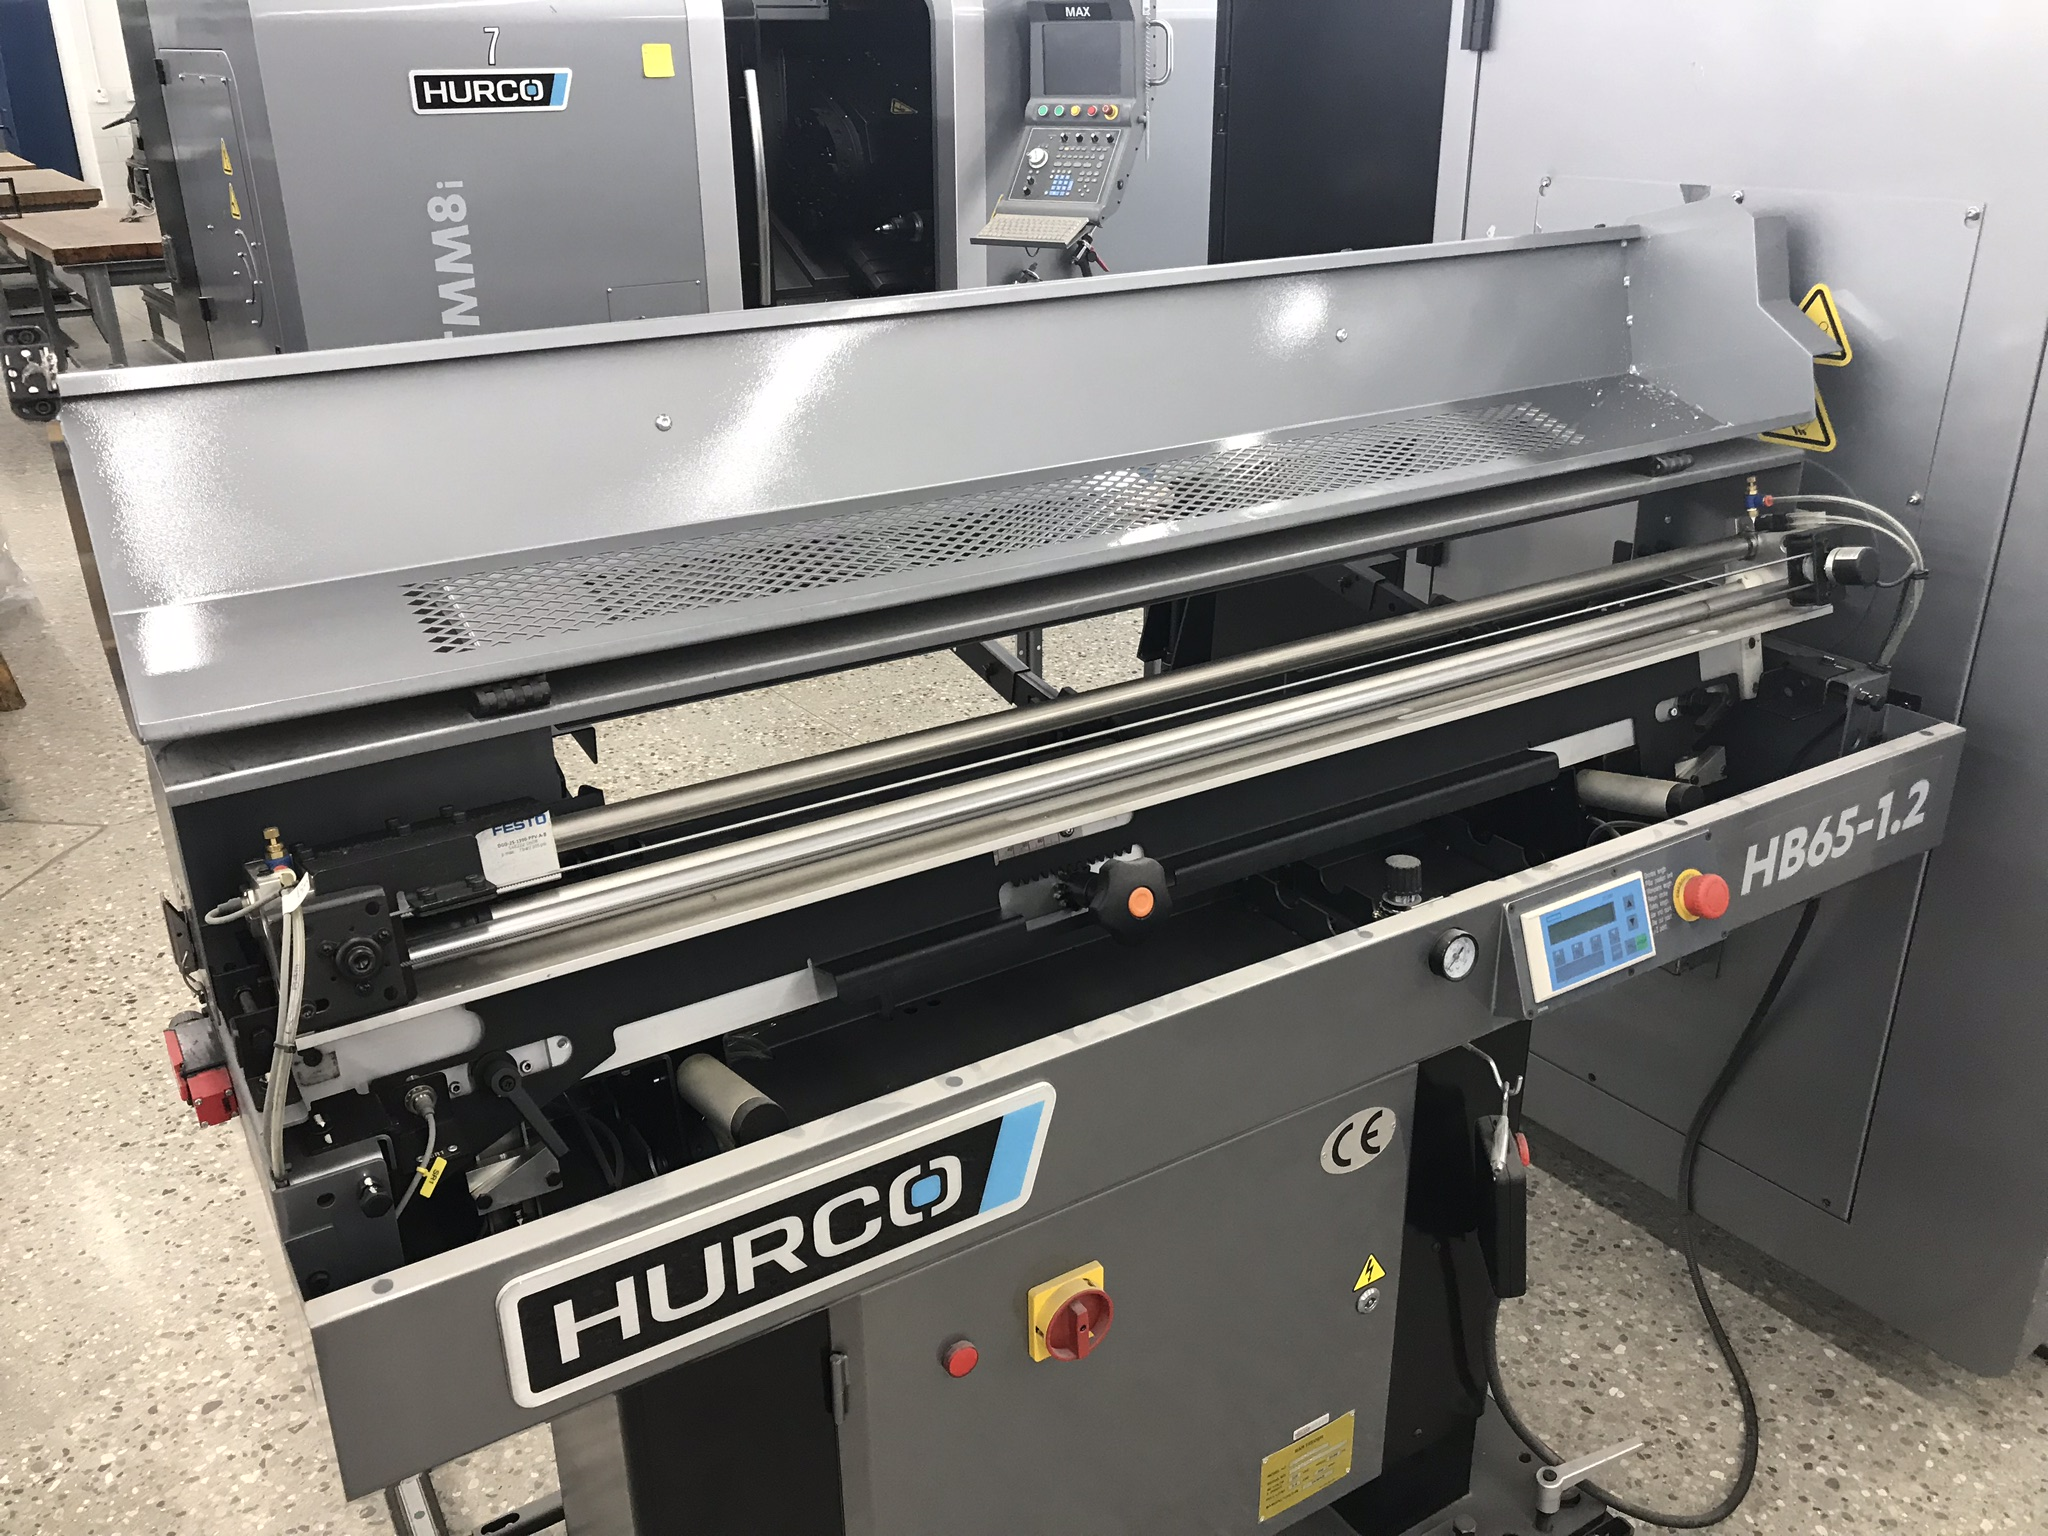 Hurco TM-6i CNC Lathe with HB65-1.2 Barfeed, Rigid Tap, Renishaw Presetter, Chip Conv, 400 Hours! - Image 12 of 16